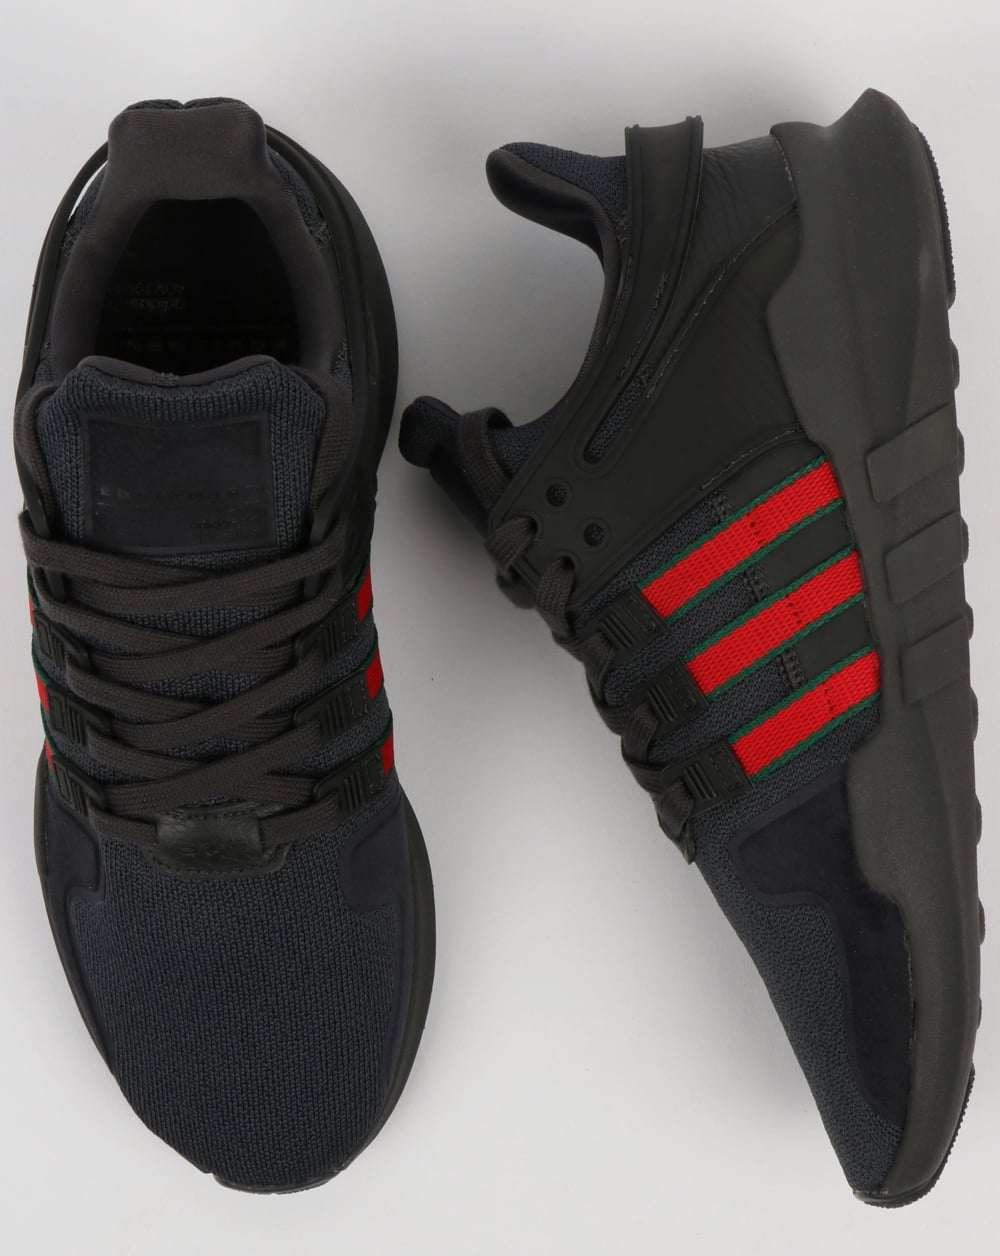 separation shoes 11332 edc1c Adidas EQT Support ADV Trainers Black/Scarlet/Green